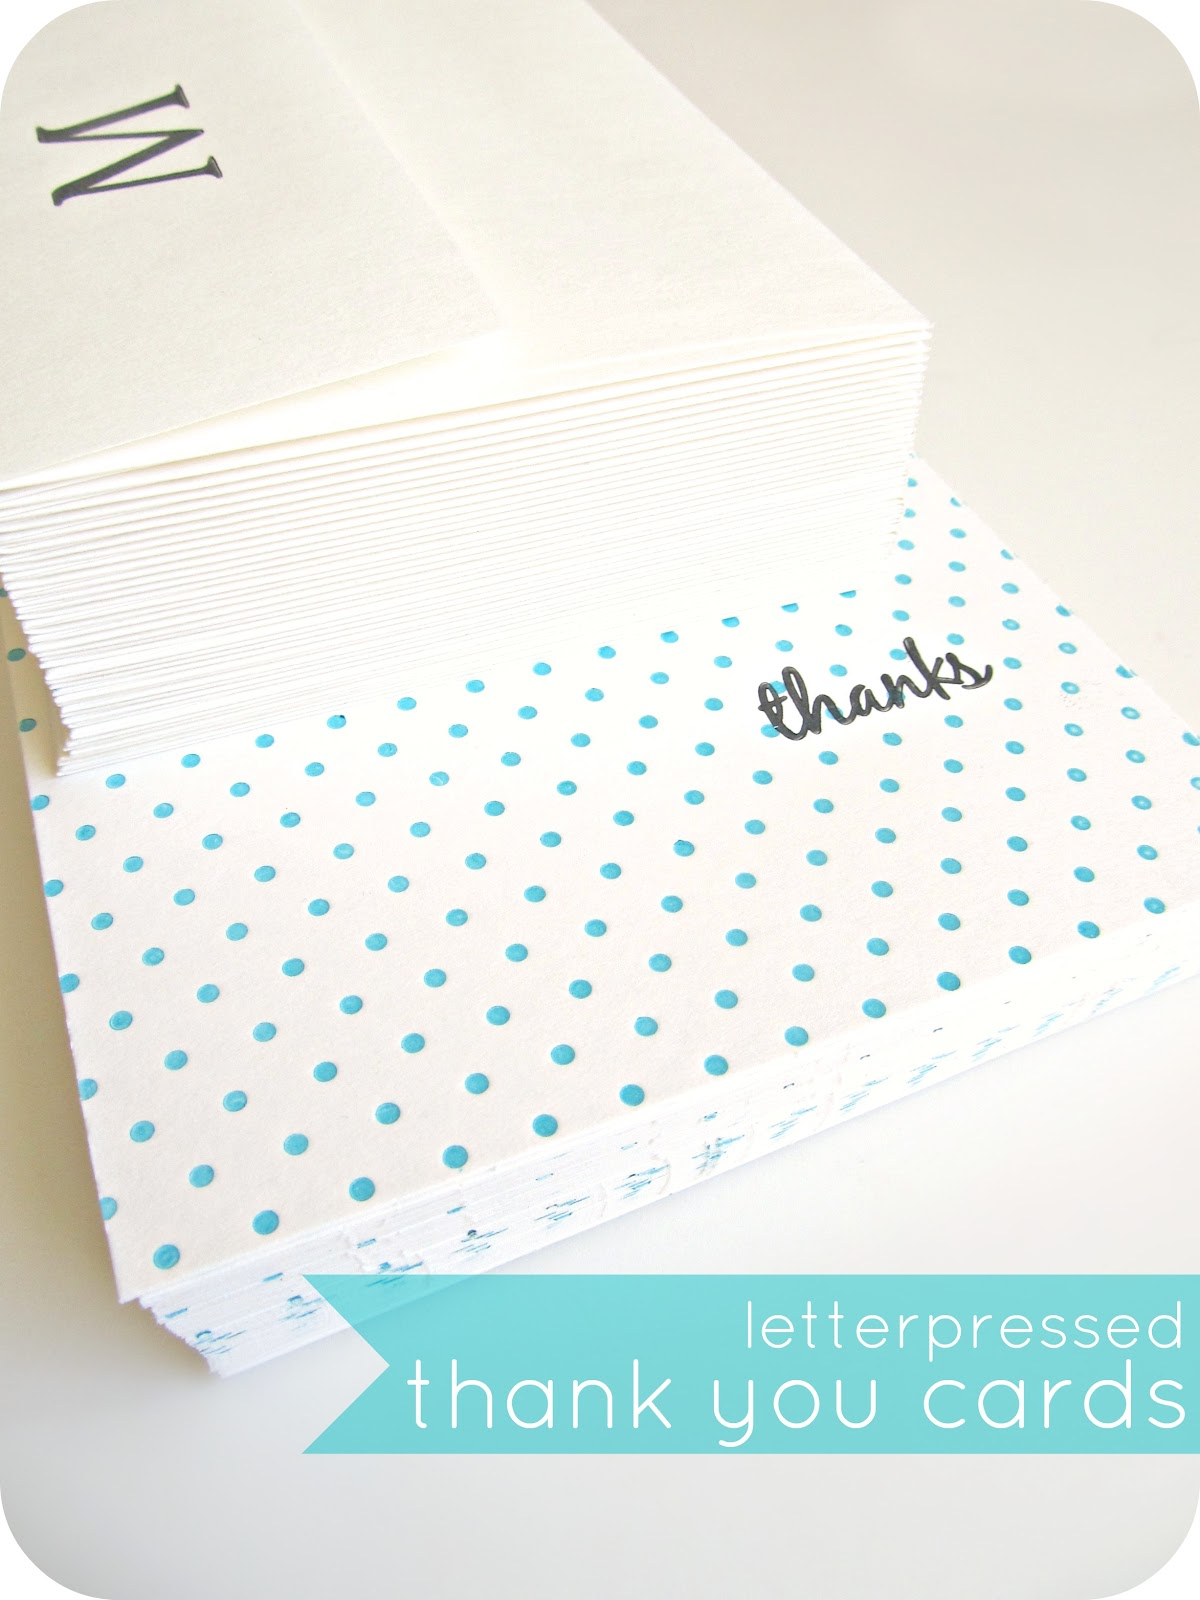 Wedding Gift Thank You Greetings : homemade by jill: letterpressed thank you cards (a bridal shower gift)